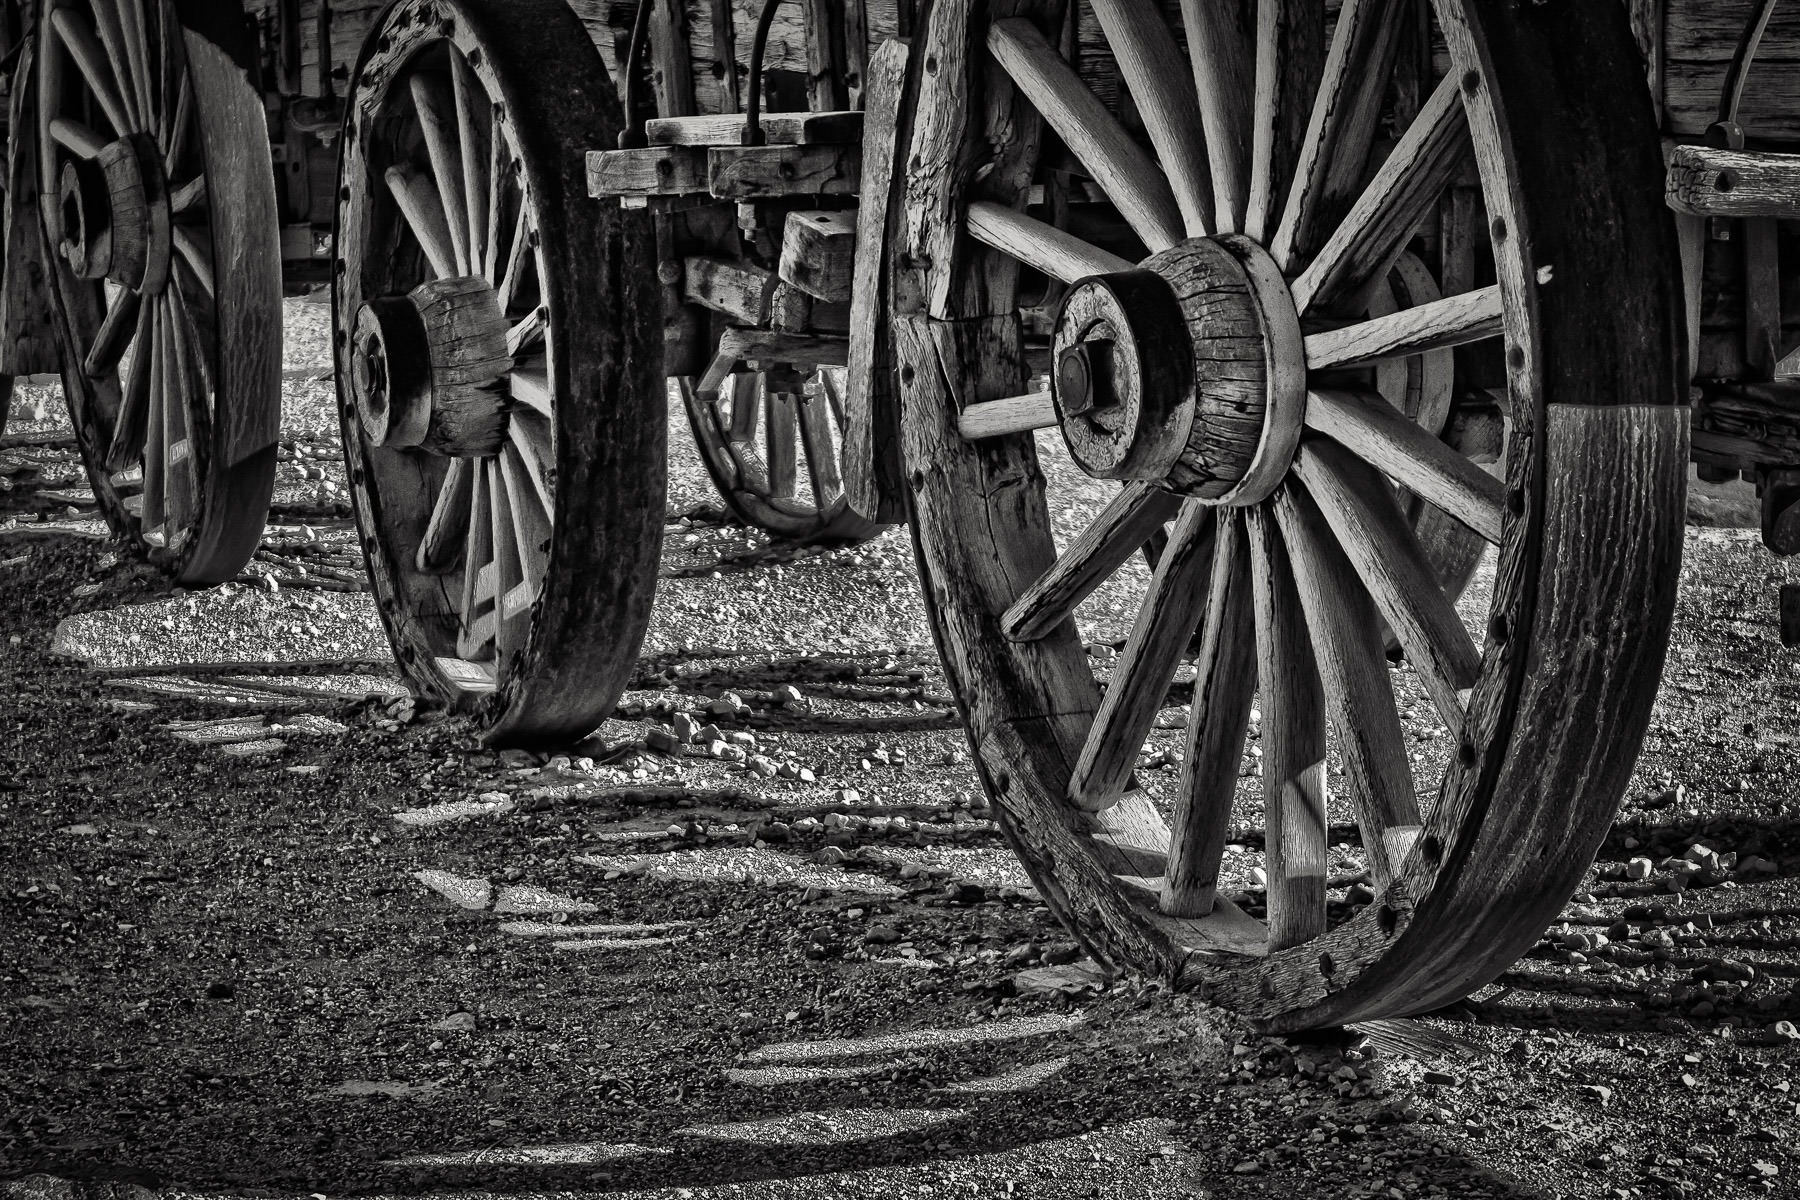 Wheels on old wagons for hauling borax on display in Death Valley National Park, California.